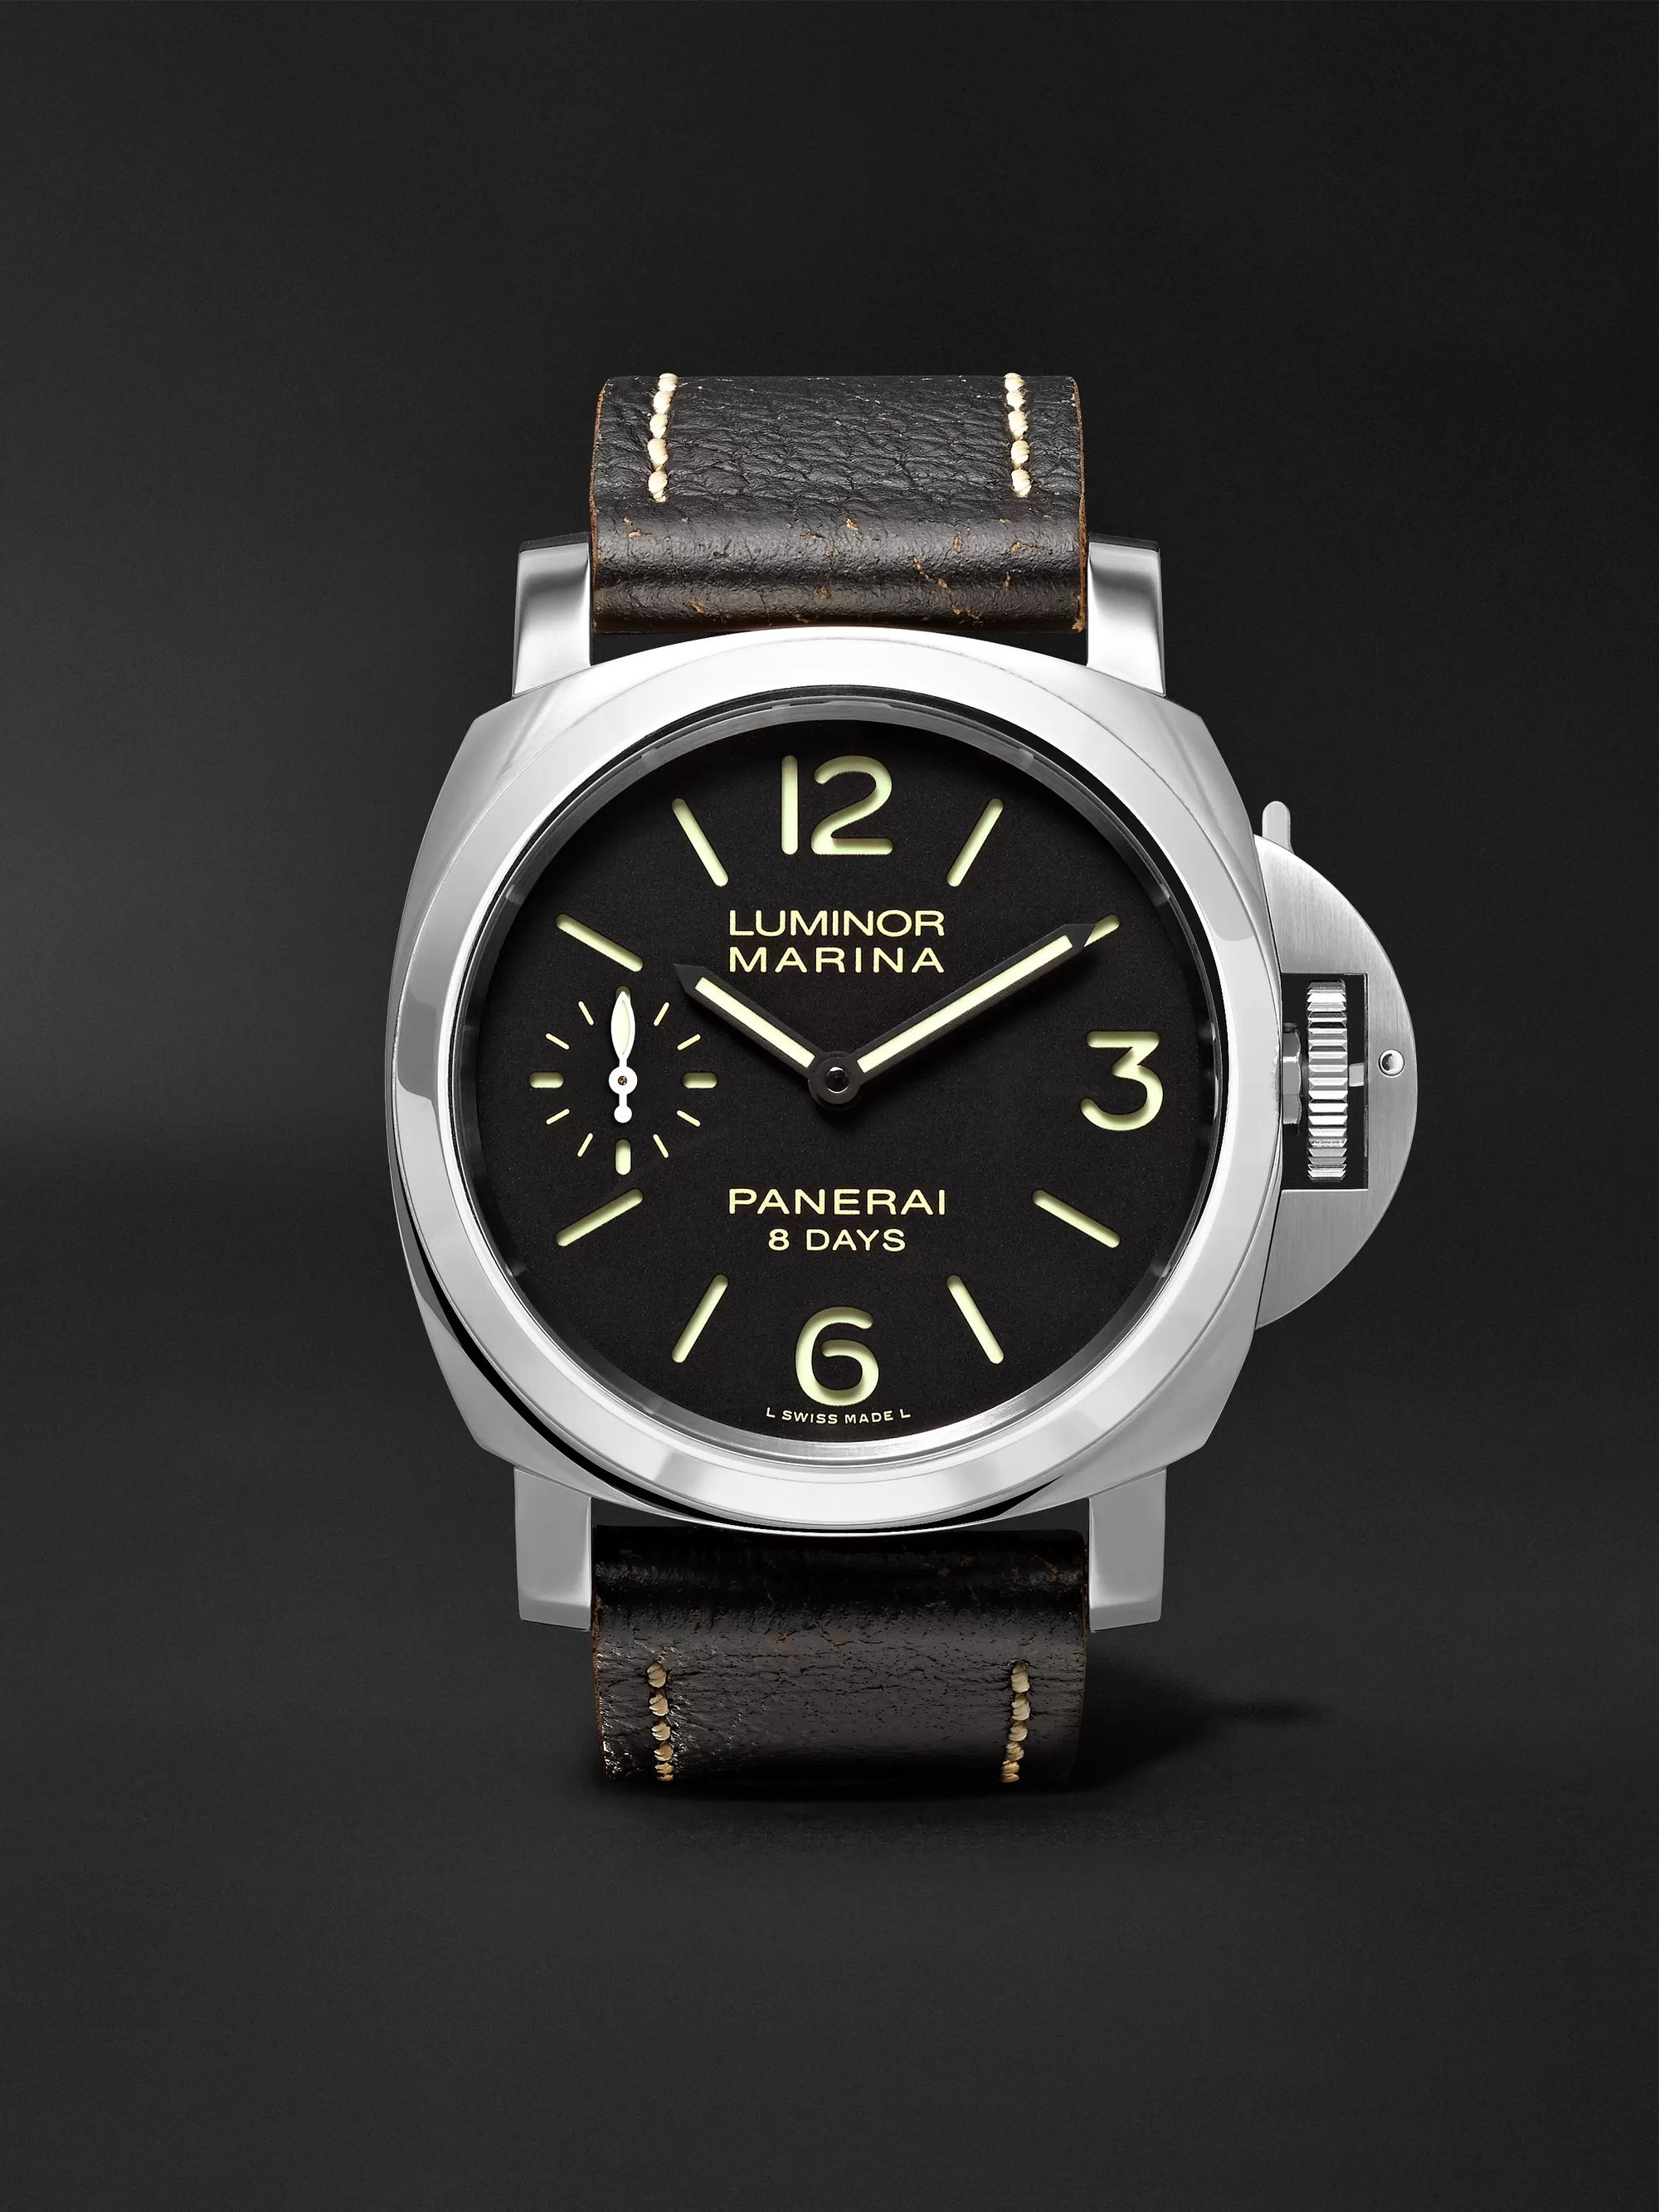 Panerai Luminor Marina 8 Days Acciaio 44mm Stainless Steel and Leather Watch